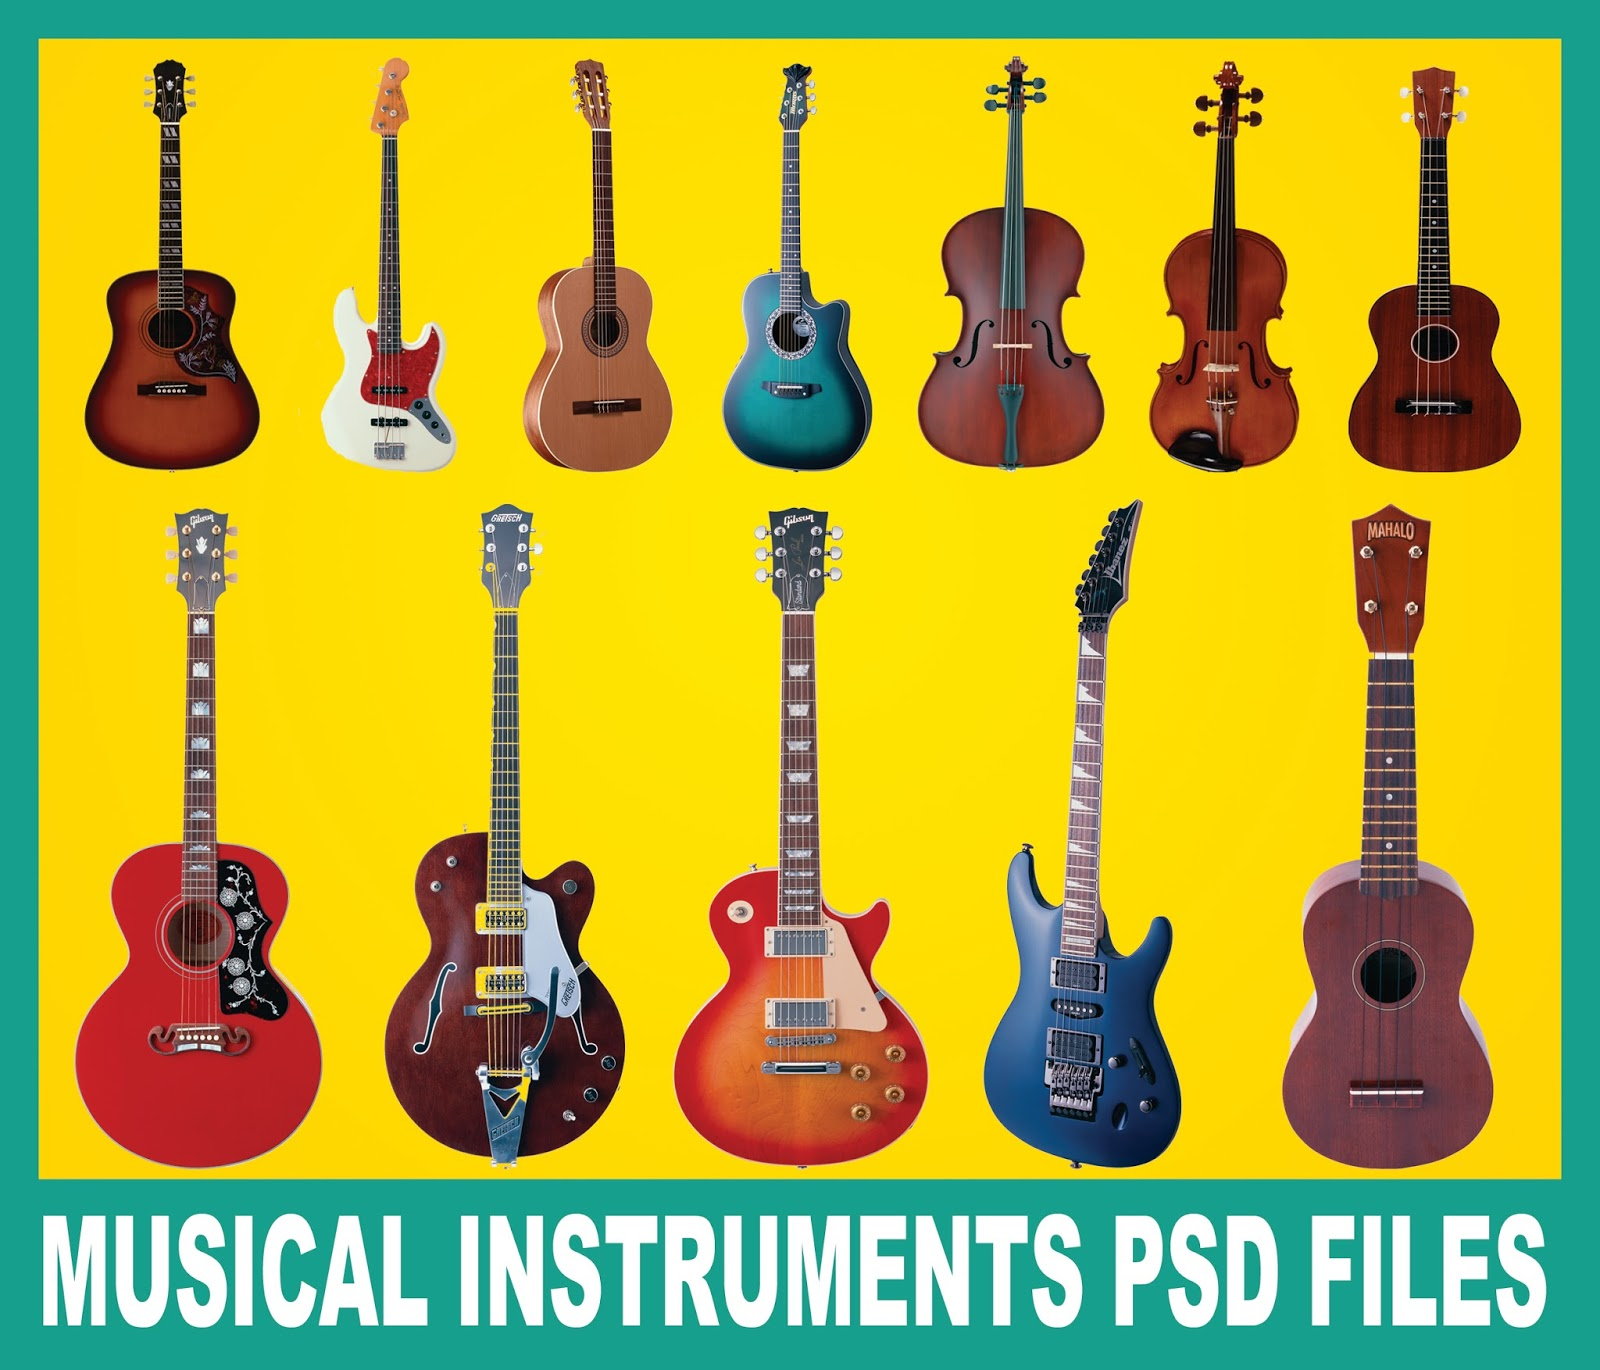 musical instruments psd free download | naveengfx, Powerpoint templates